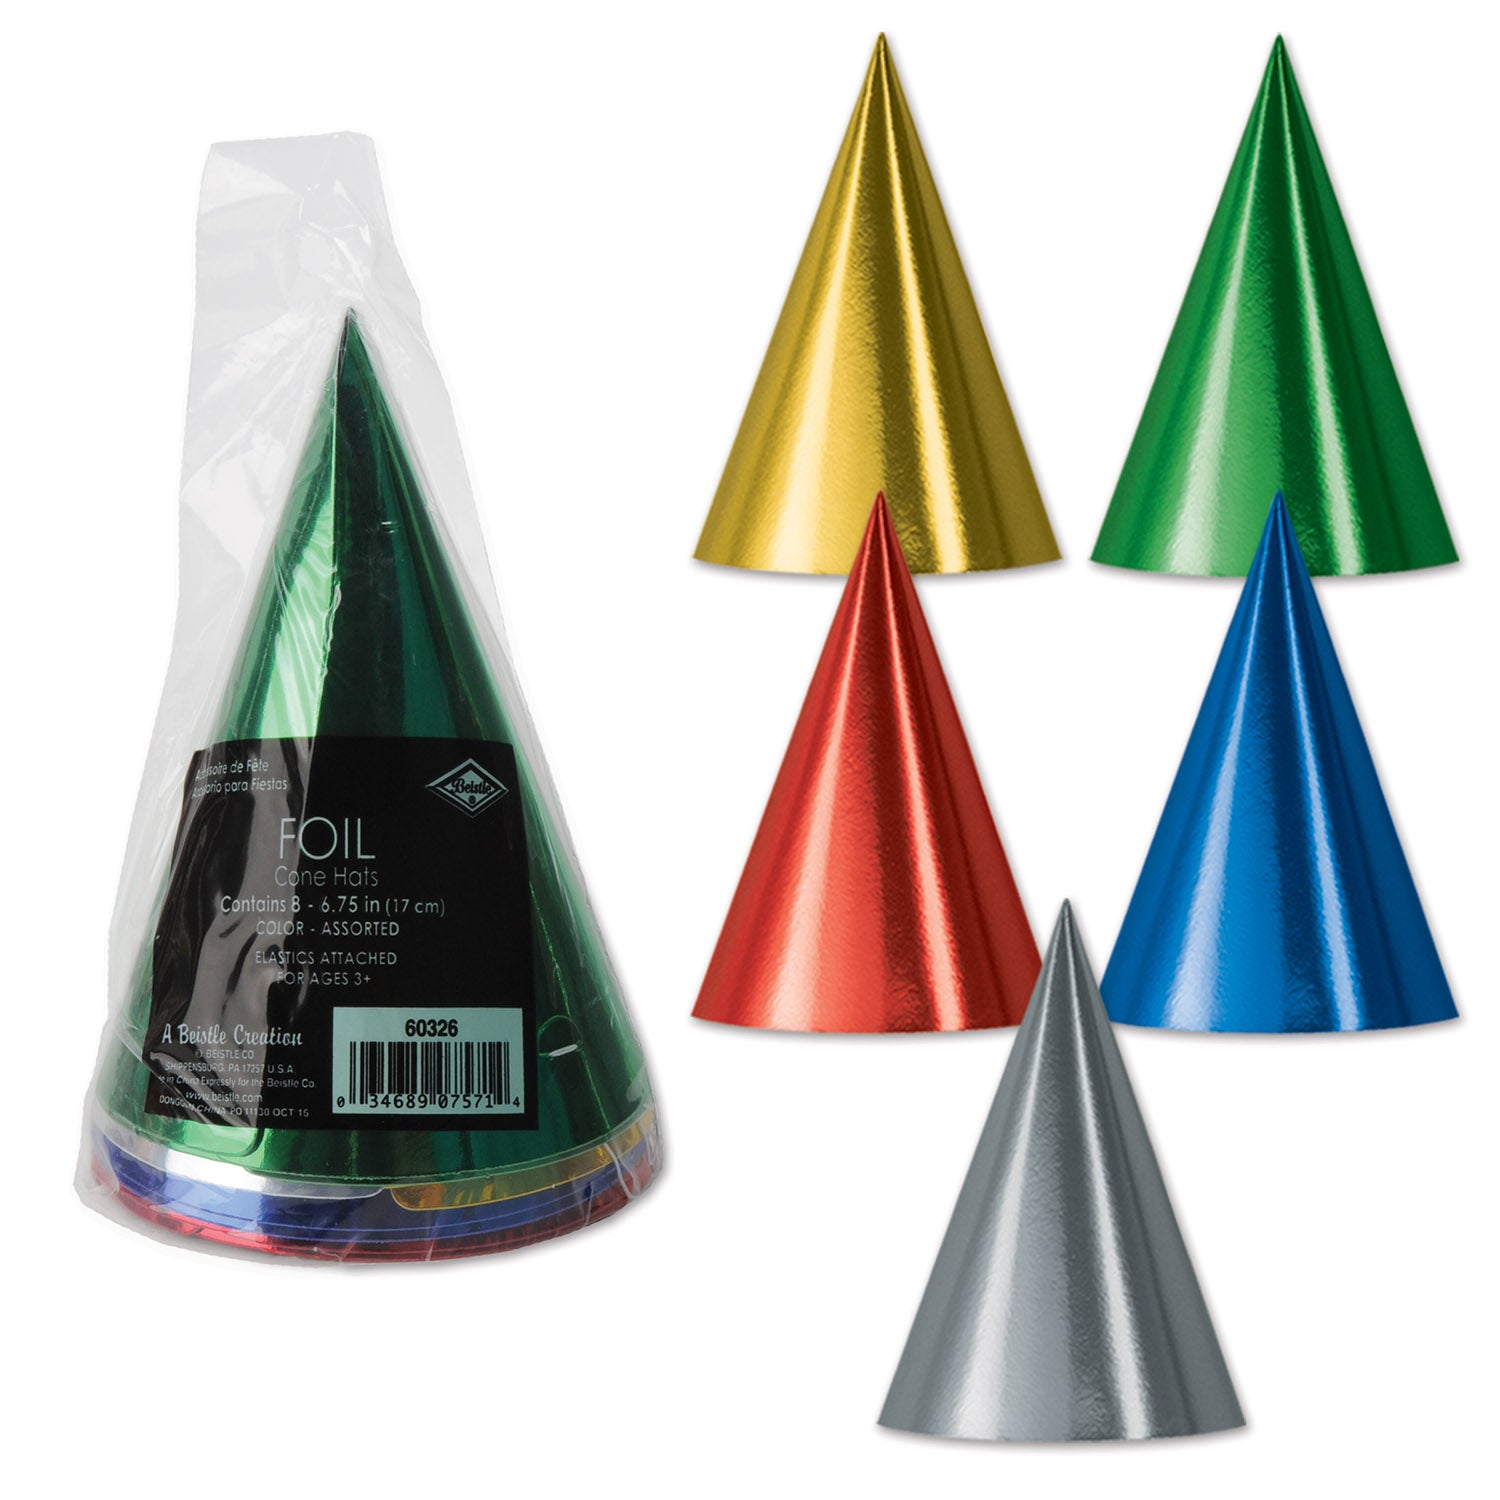 Packaged Foil Cone Hats (8/Pkg) by Beistle - Birthday Party Supplies Decorations